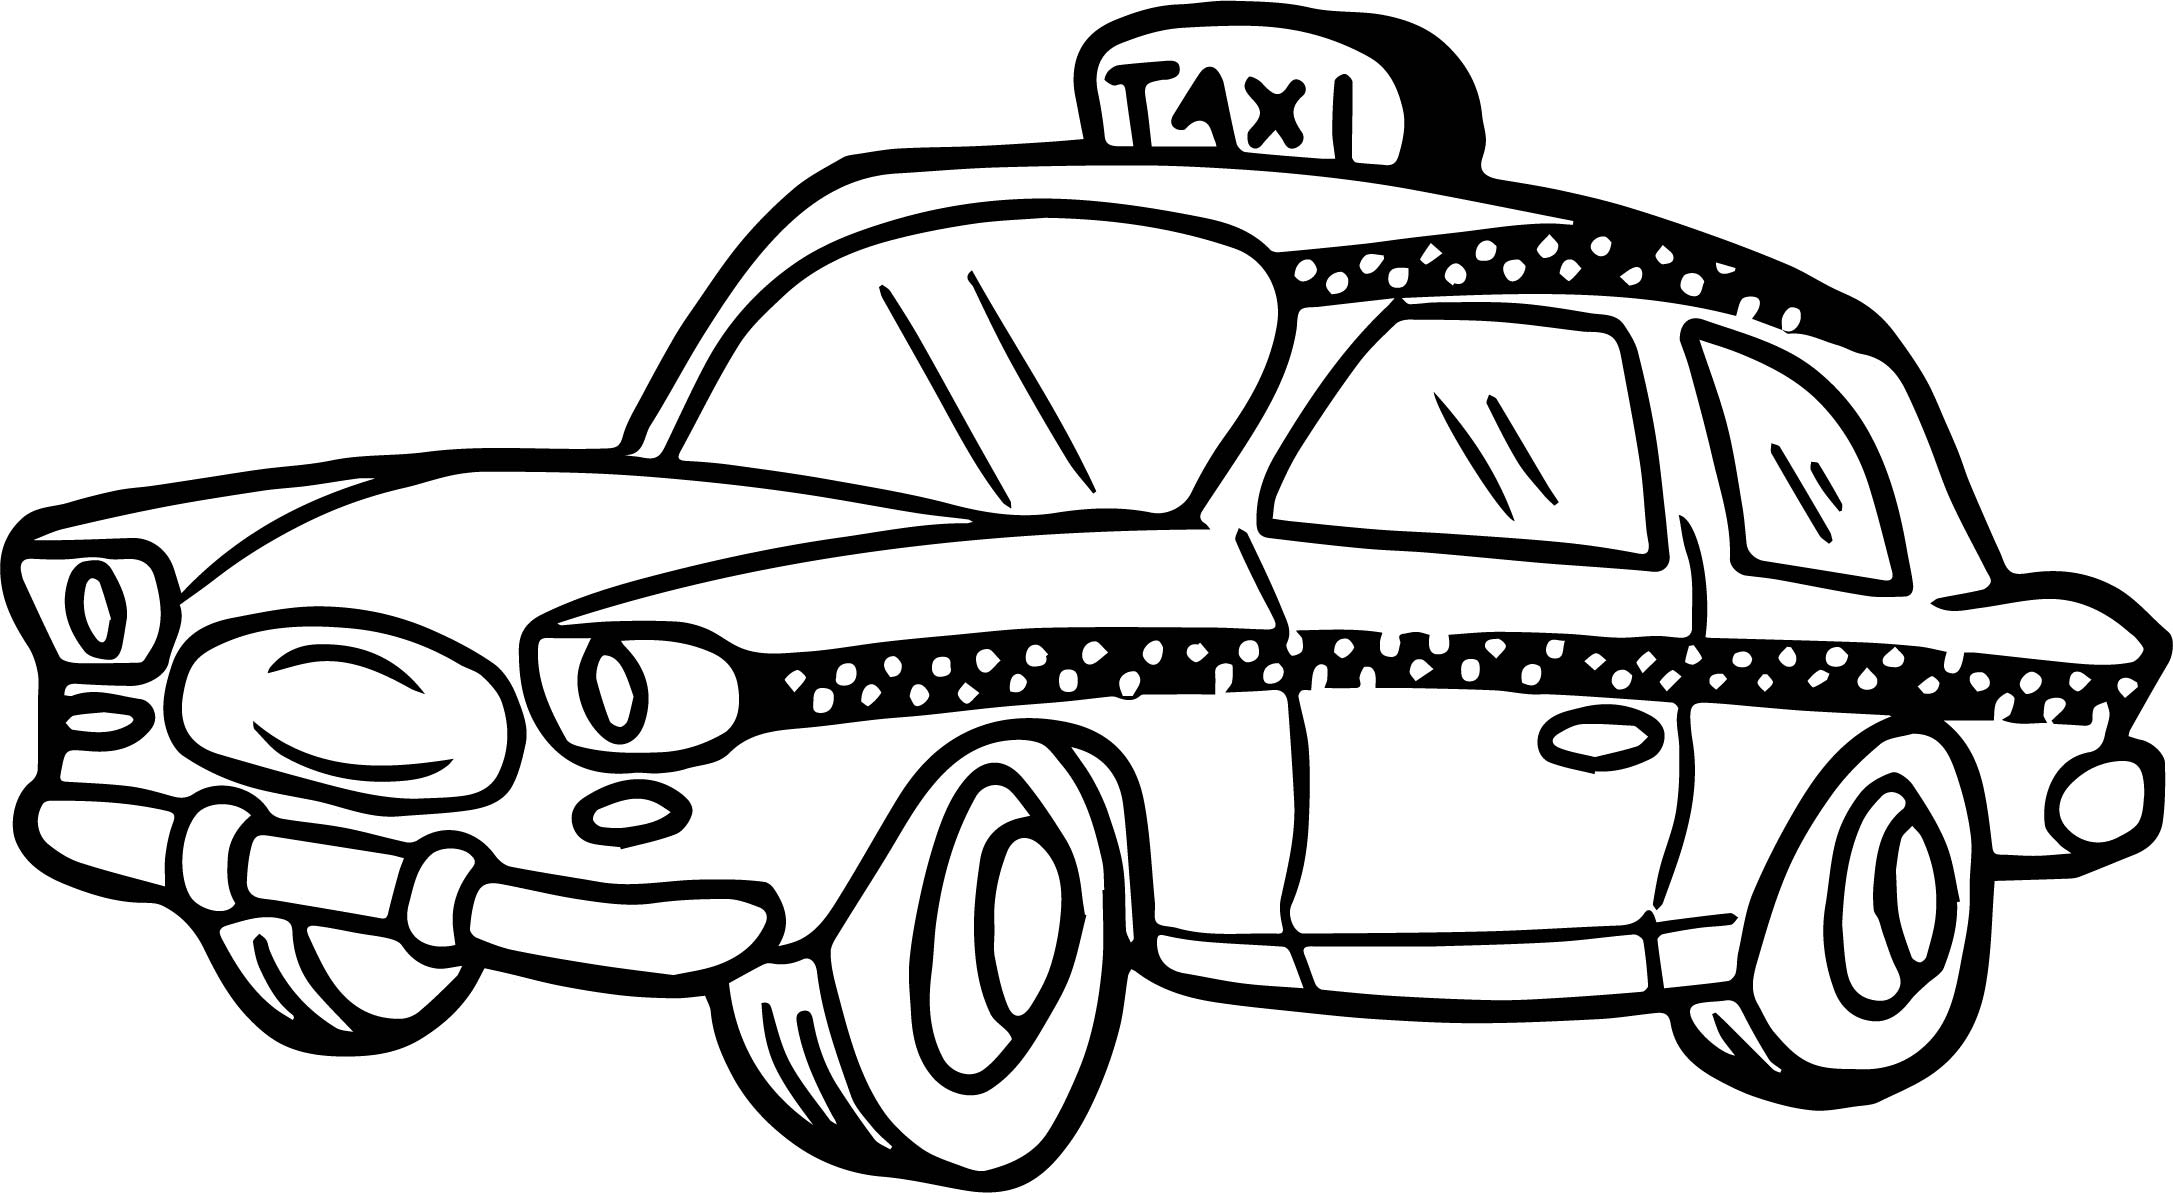 Cute taxi driver car coloring page for Taxi coloring page